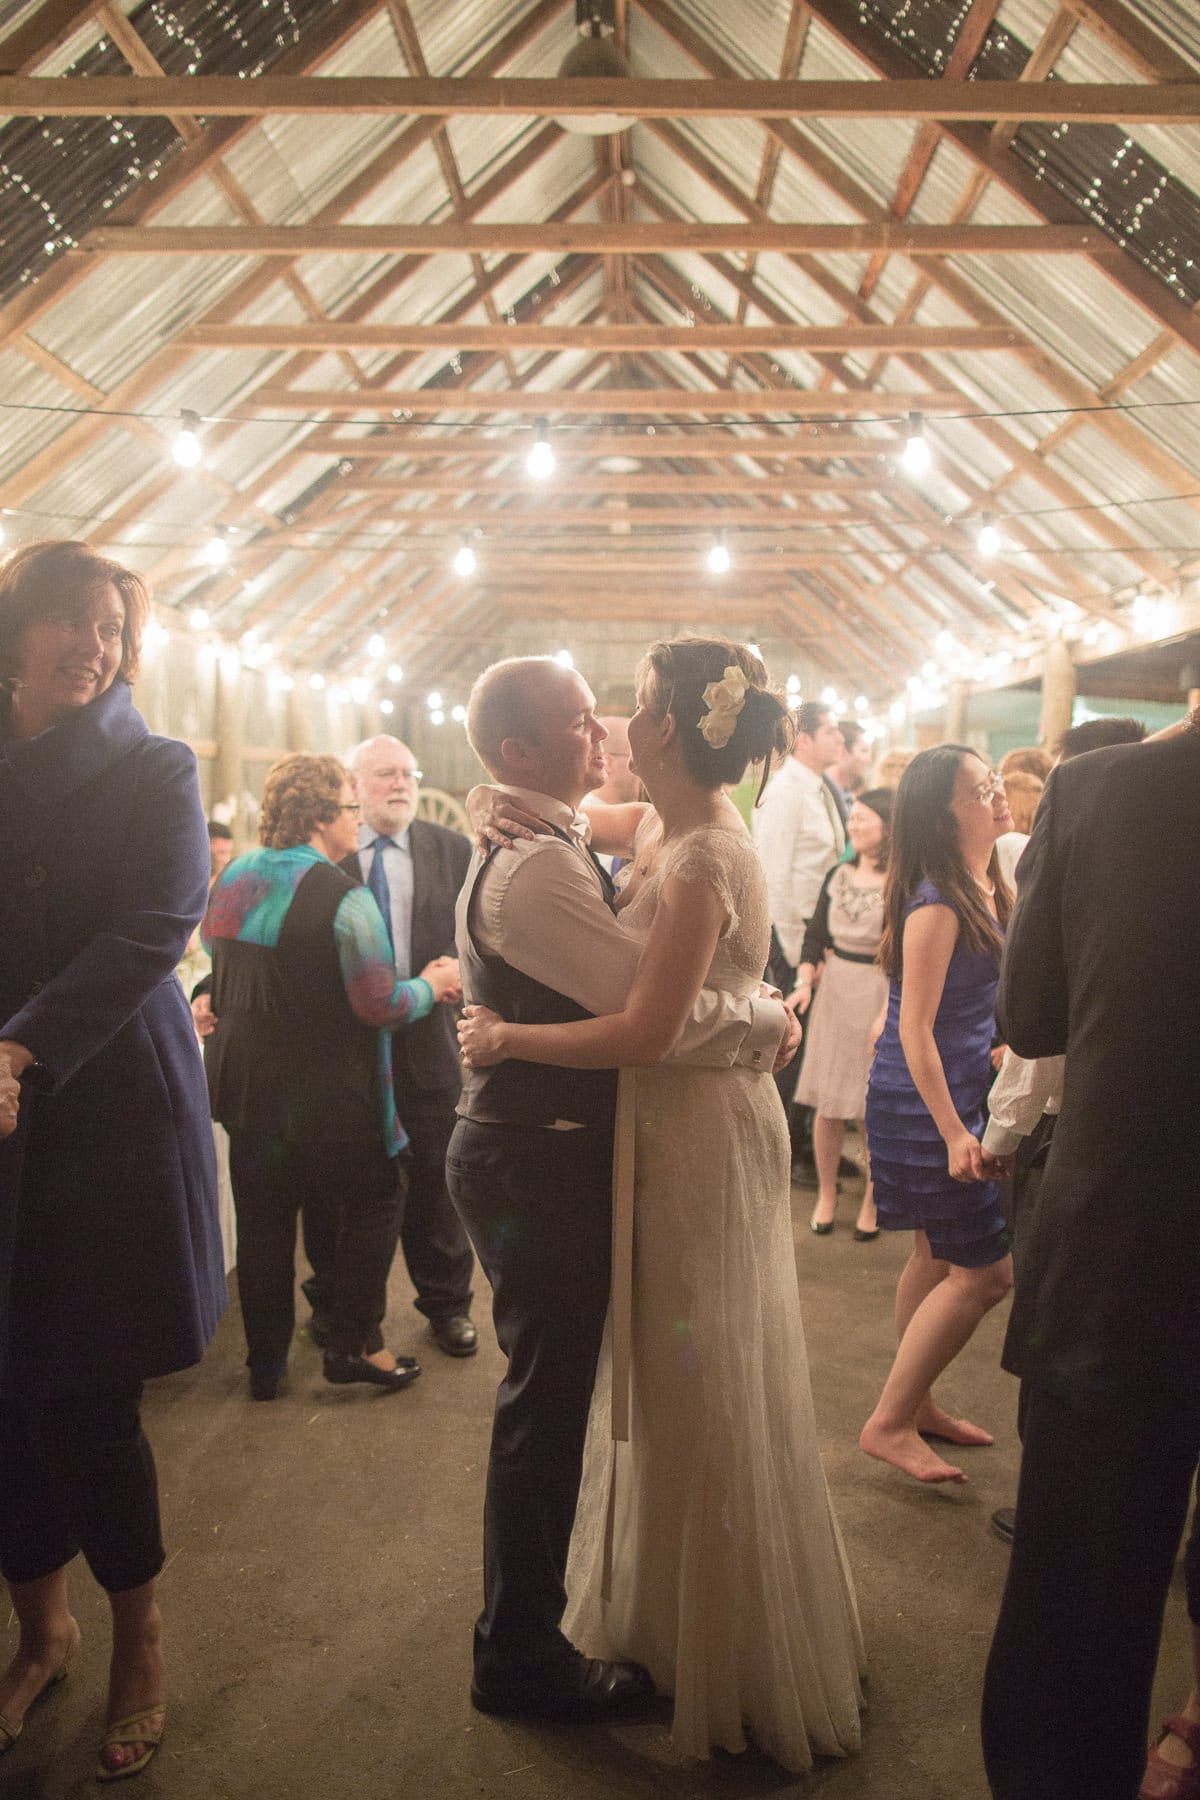 last dance - love and emotion captured at barn wedding in melbourne - creative melbourne photographer for weddings and events